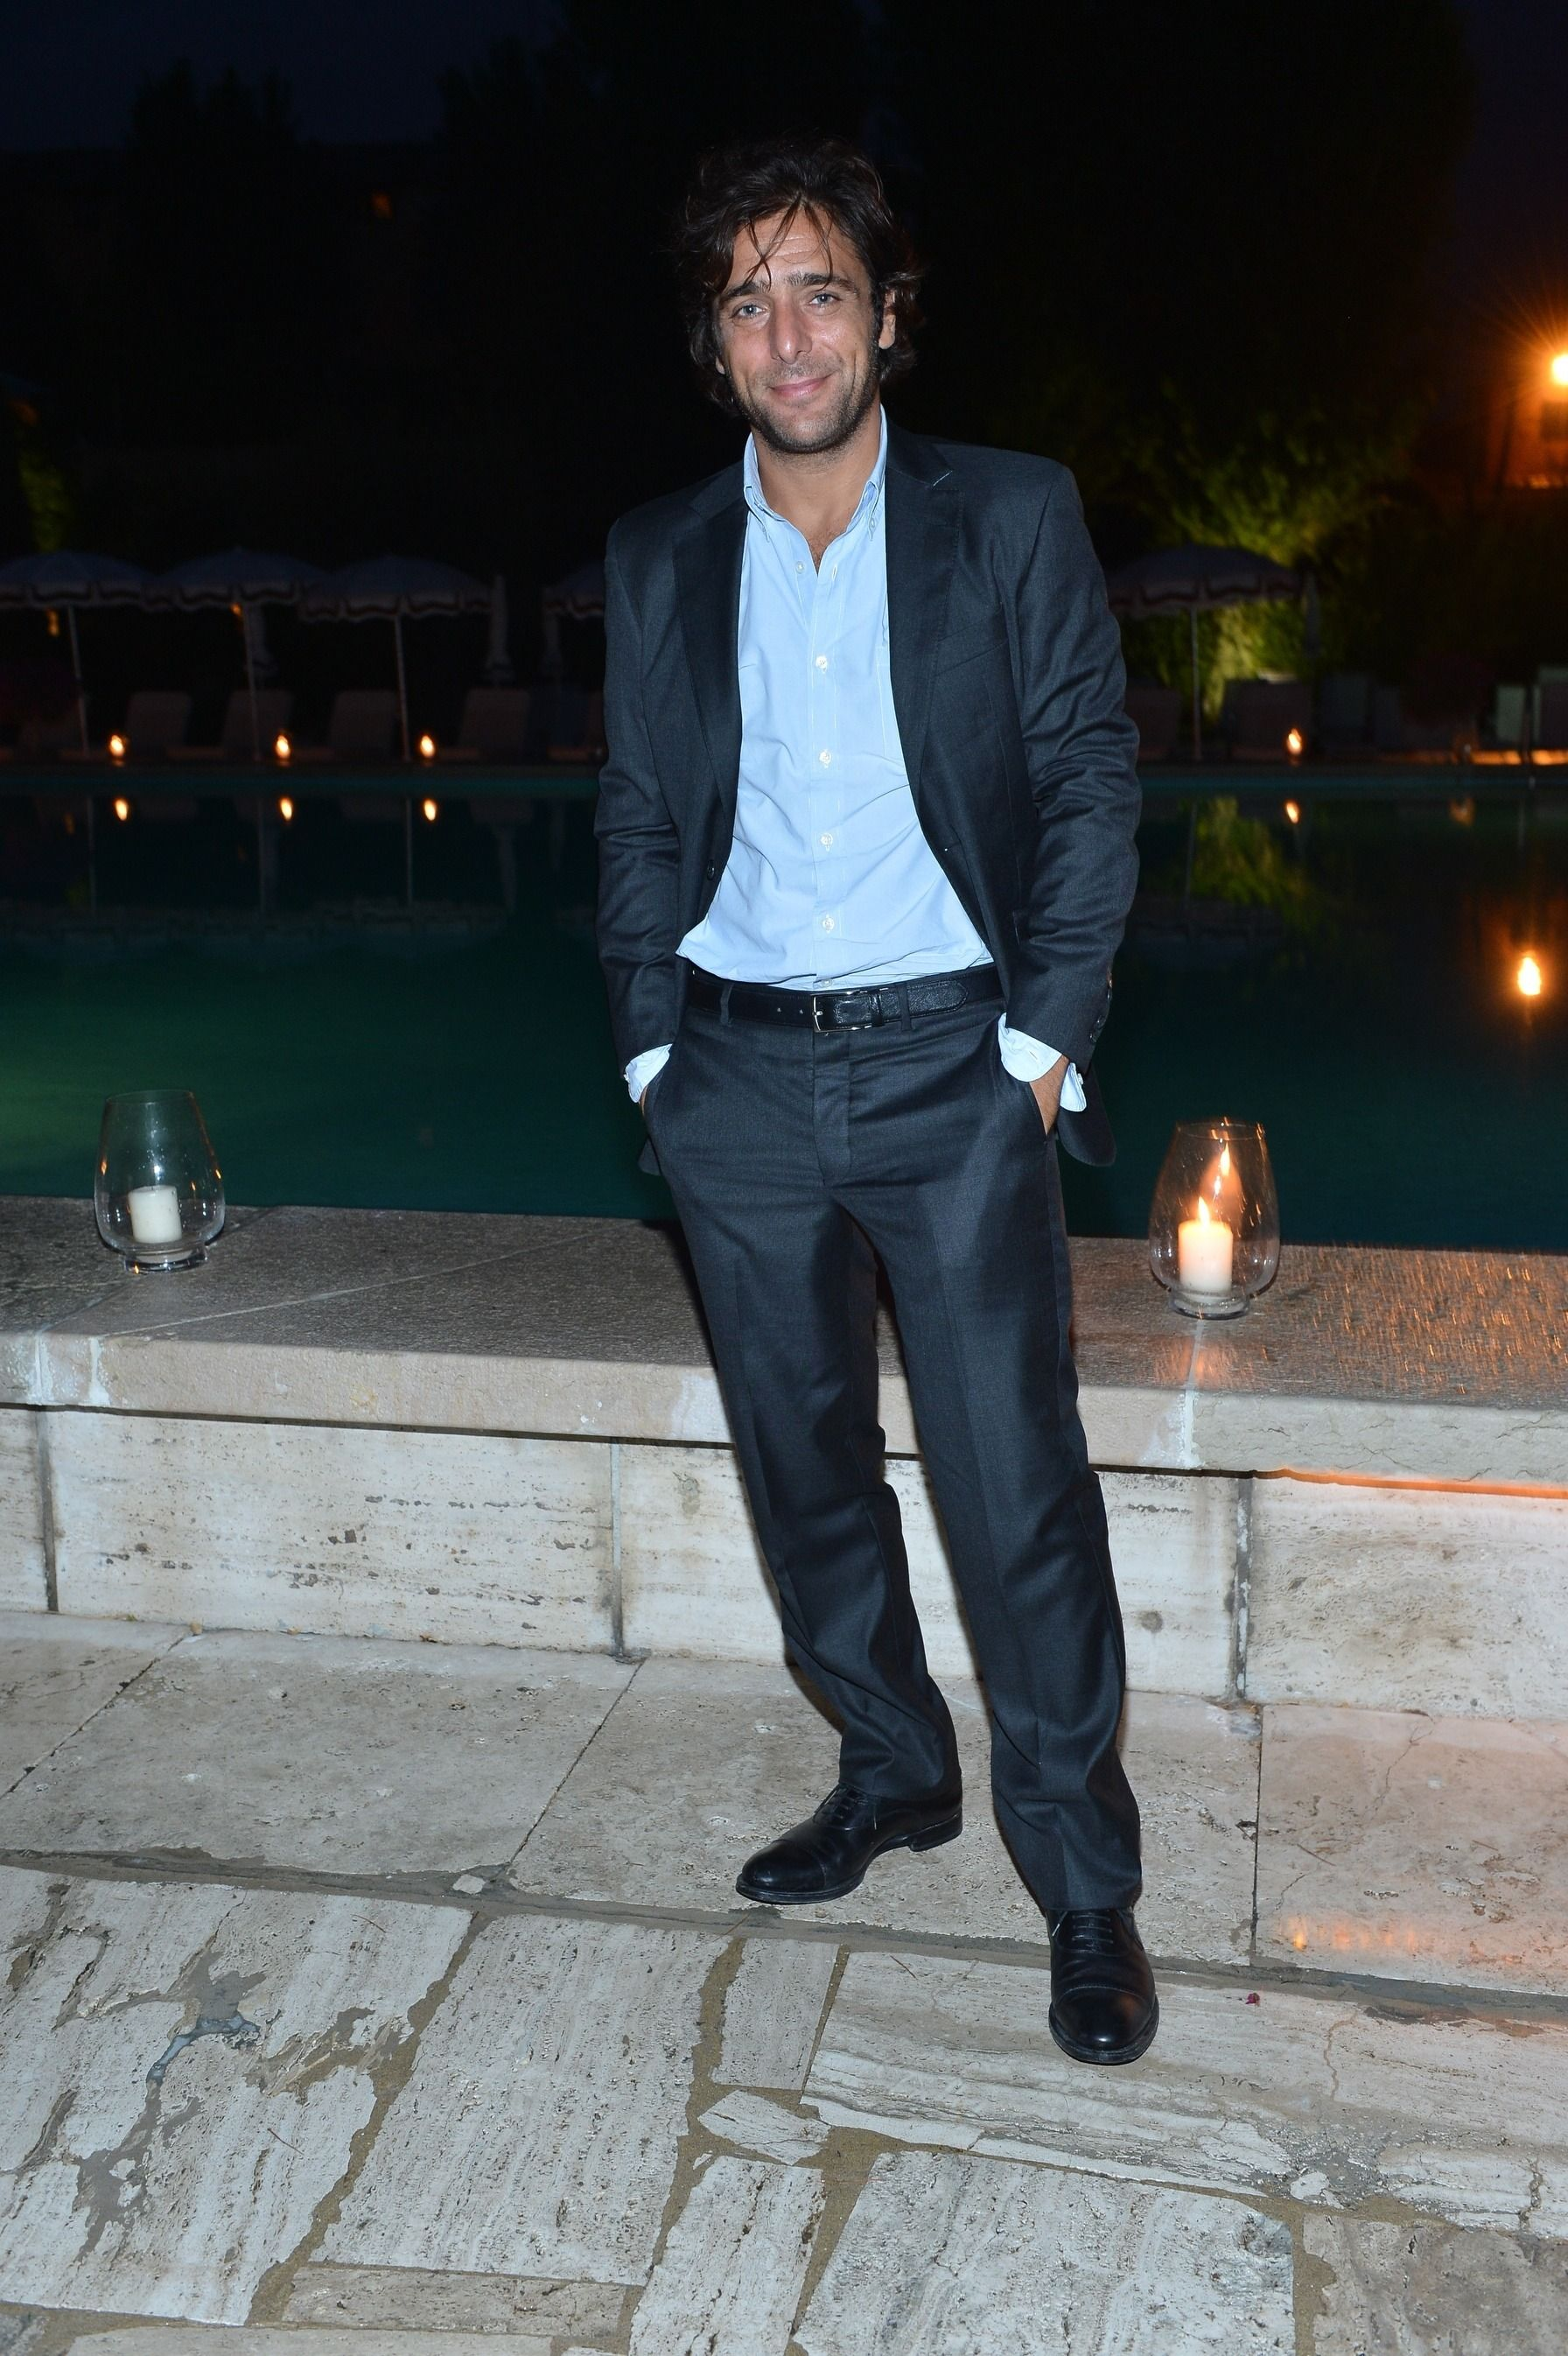 Adriano Giannini at the Cipriani hotel in Venice. 69th Venice International Film Festival.